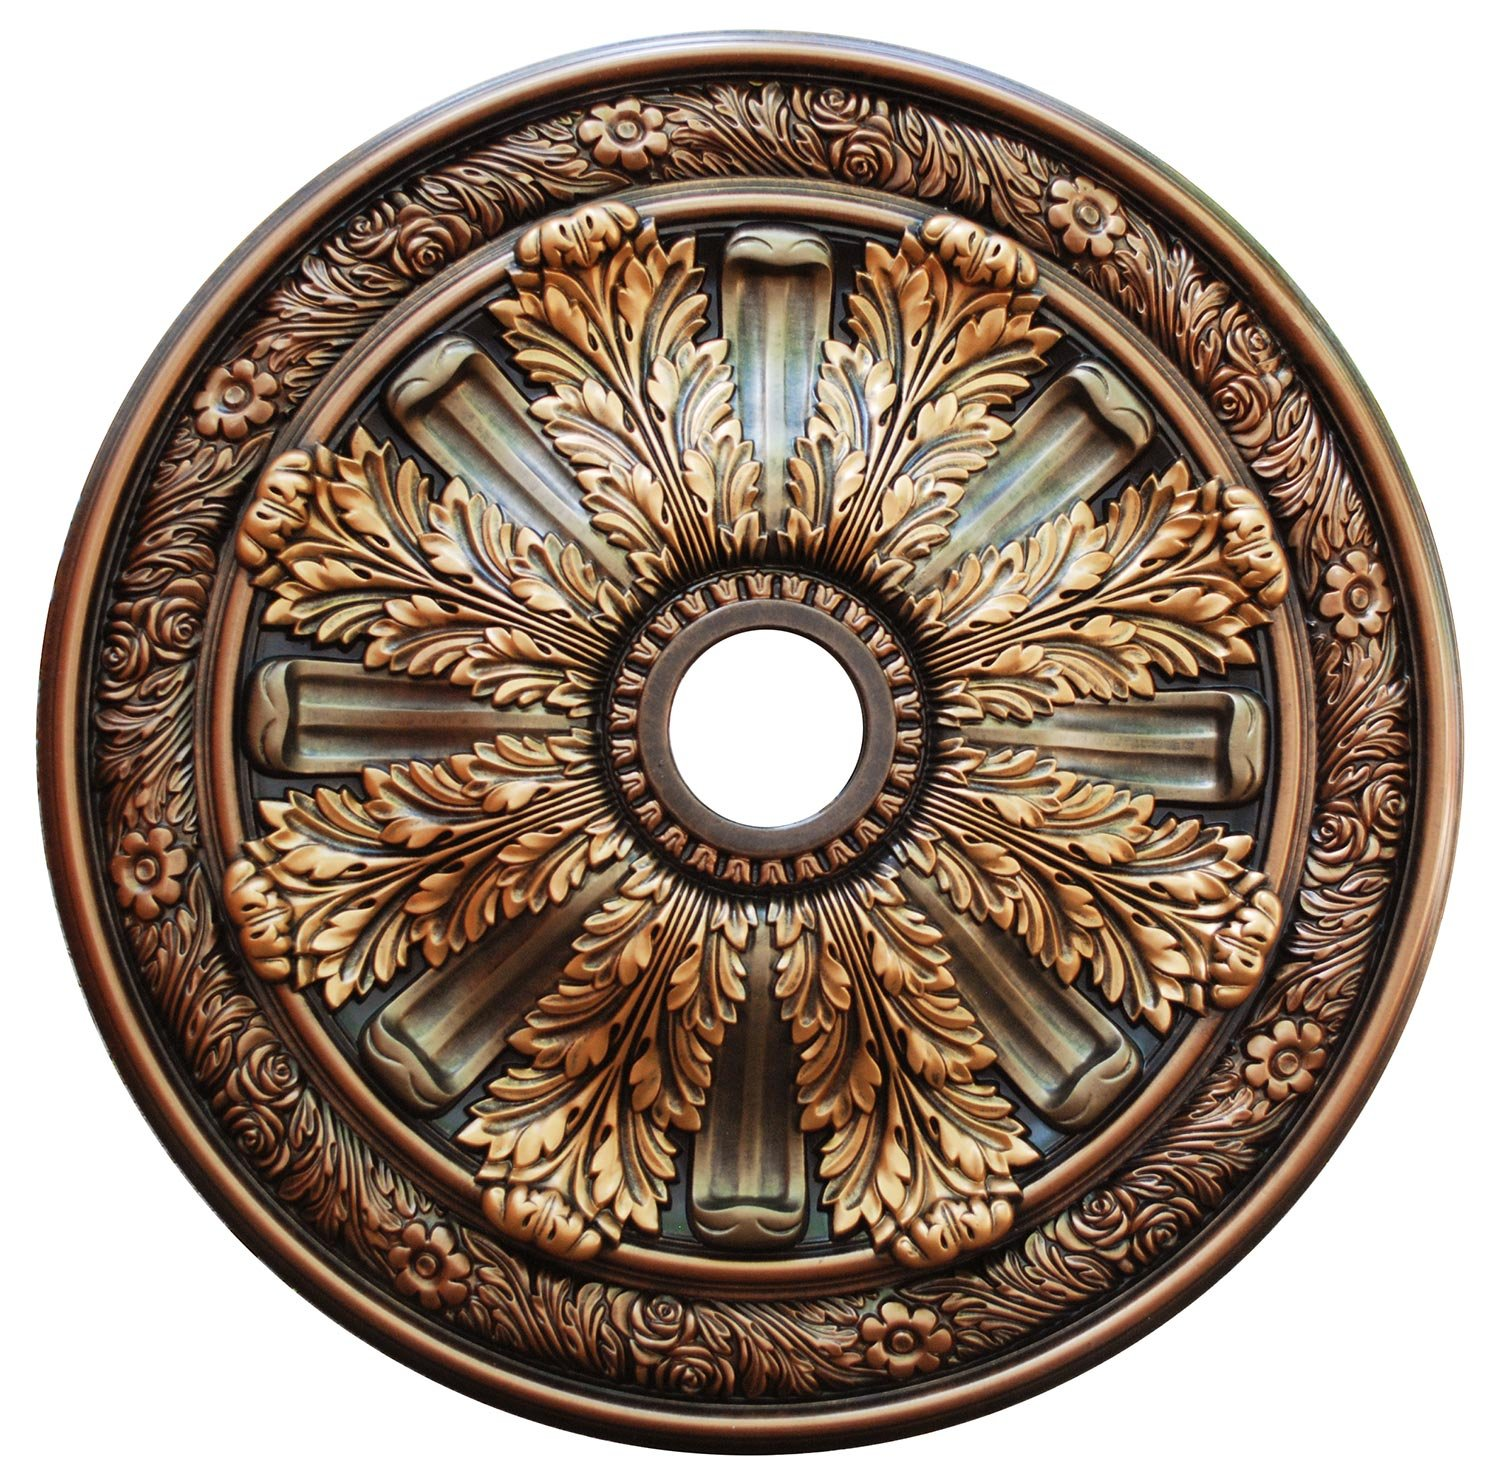 Fine Art Deco ''Burnish Leaves'' Hand Painted Ceiling Medallion 30 In. Finished in Antique Bronze, Tequila Gold and Blackened Bronze by Fine Art Deco